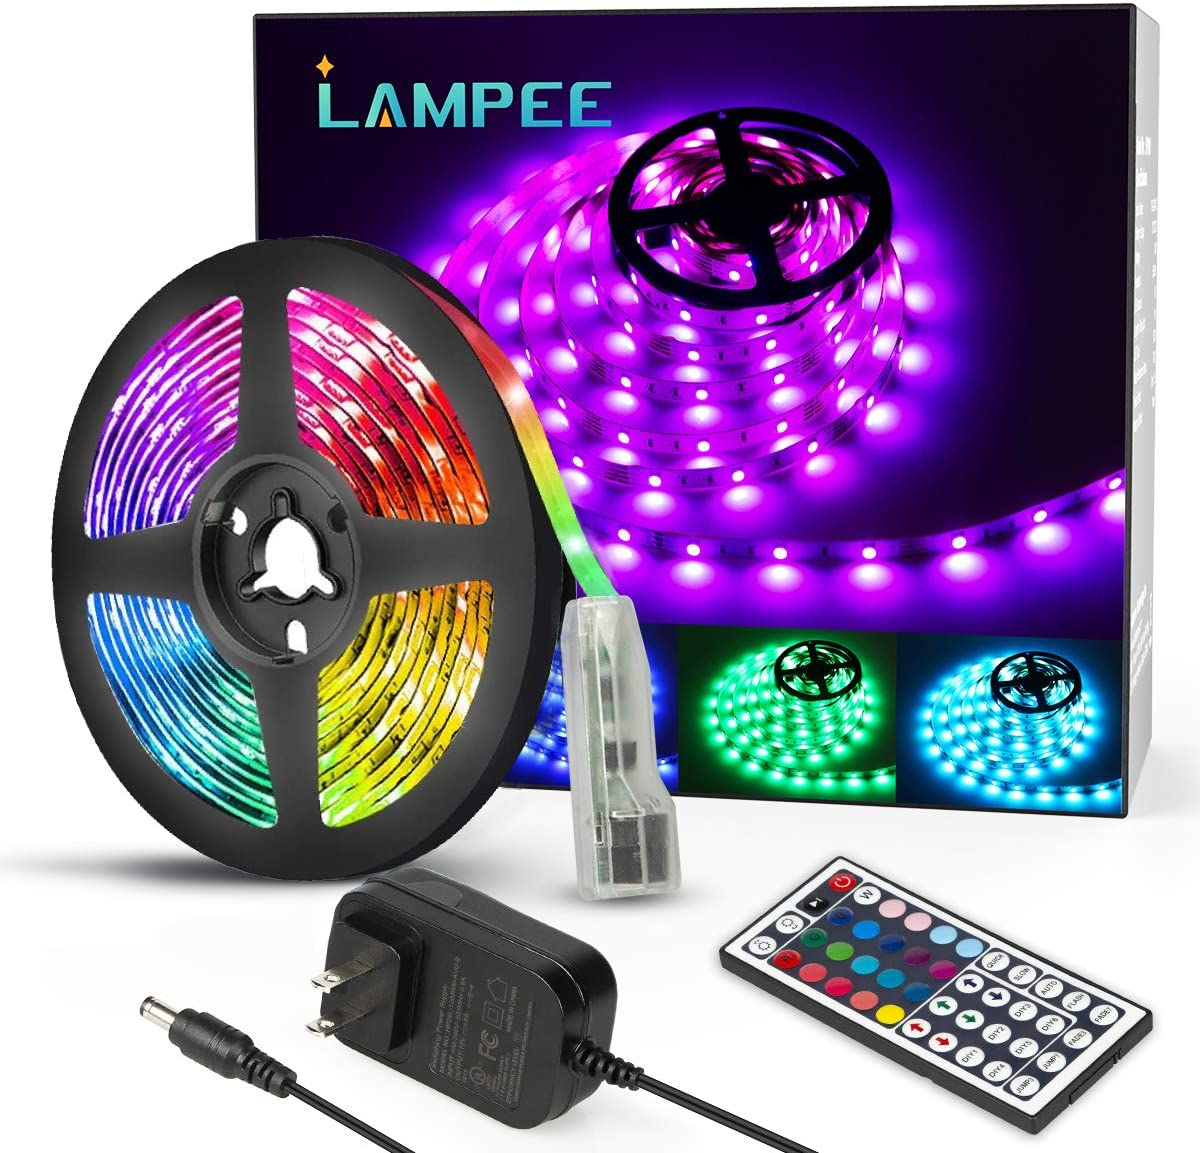 LED Strip Lights, Lampee 16.4ft 12V Flexible RGB Lights Color Changing, 5050 SMD Rope Light Kit with Remote Controller and 150 LEDs for Home, Kitchen, Bedroom, DIY Decoration